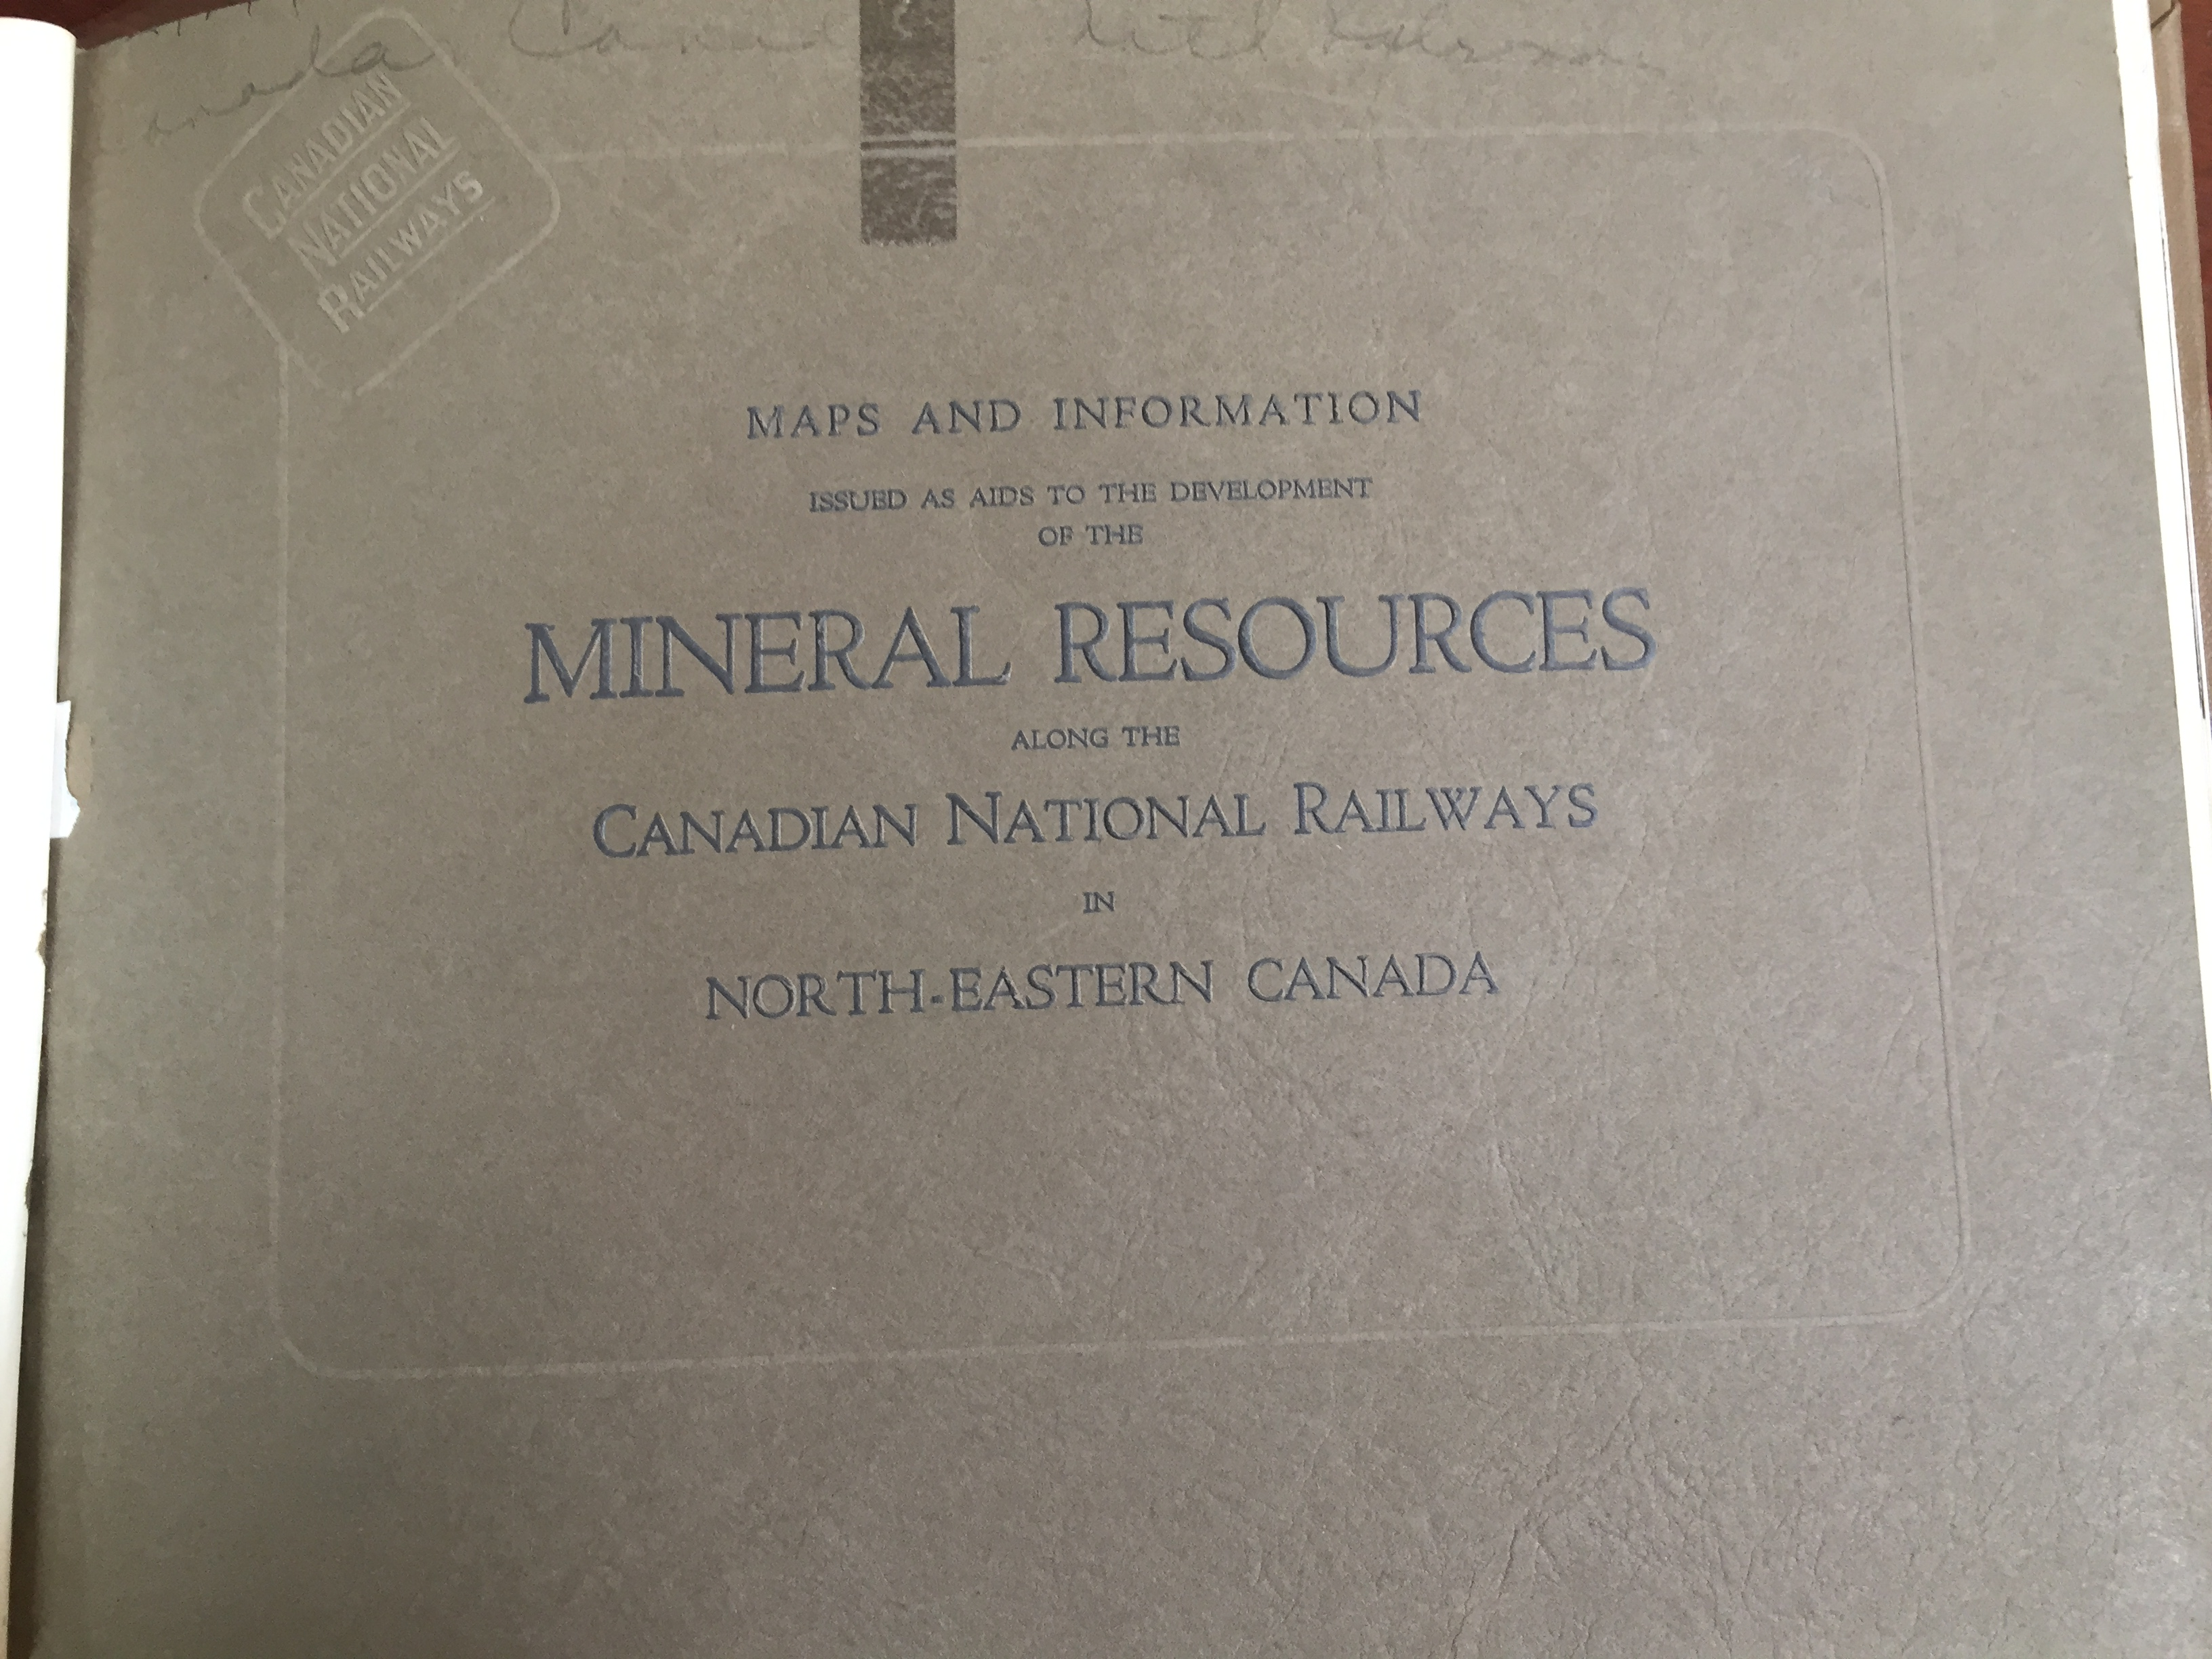 Image for Maps and Information Issued as Aids to the Development of the Mineral Resources Along the Canadian National Railways in North-Eastern Canada